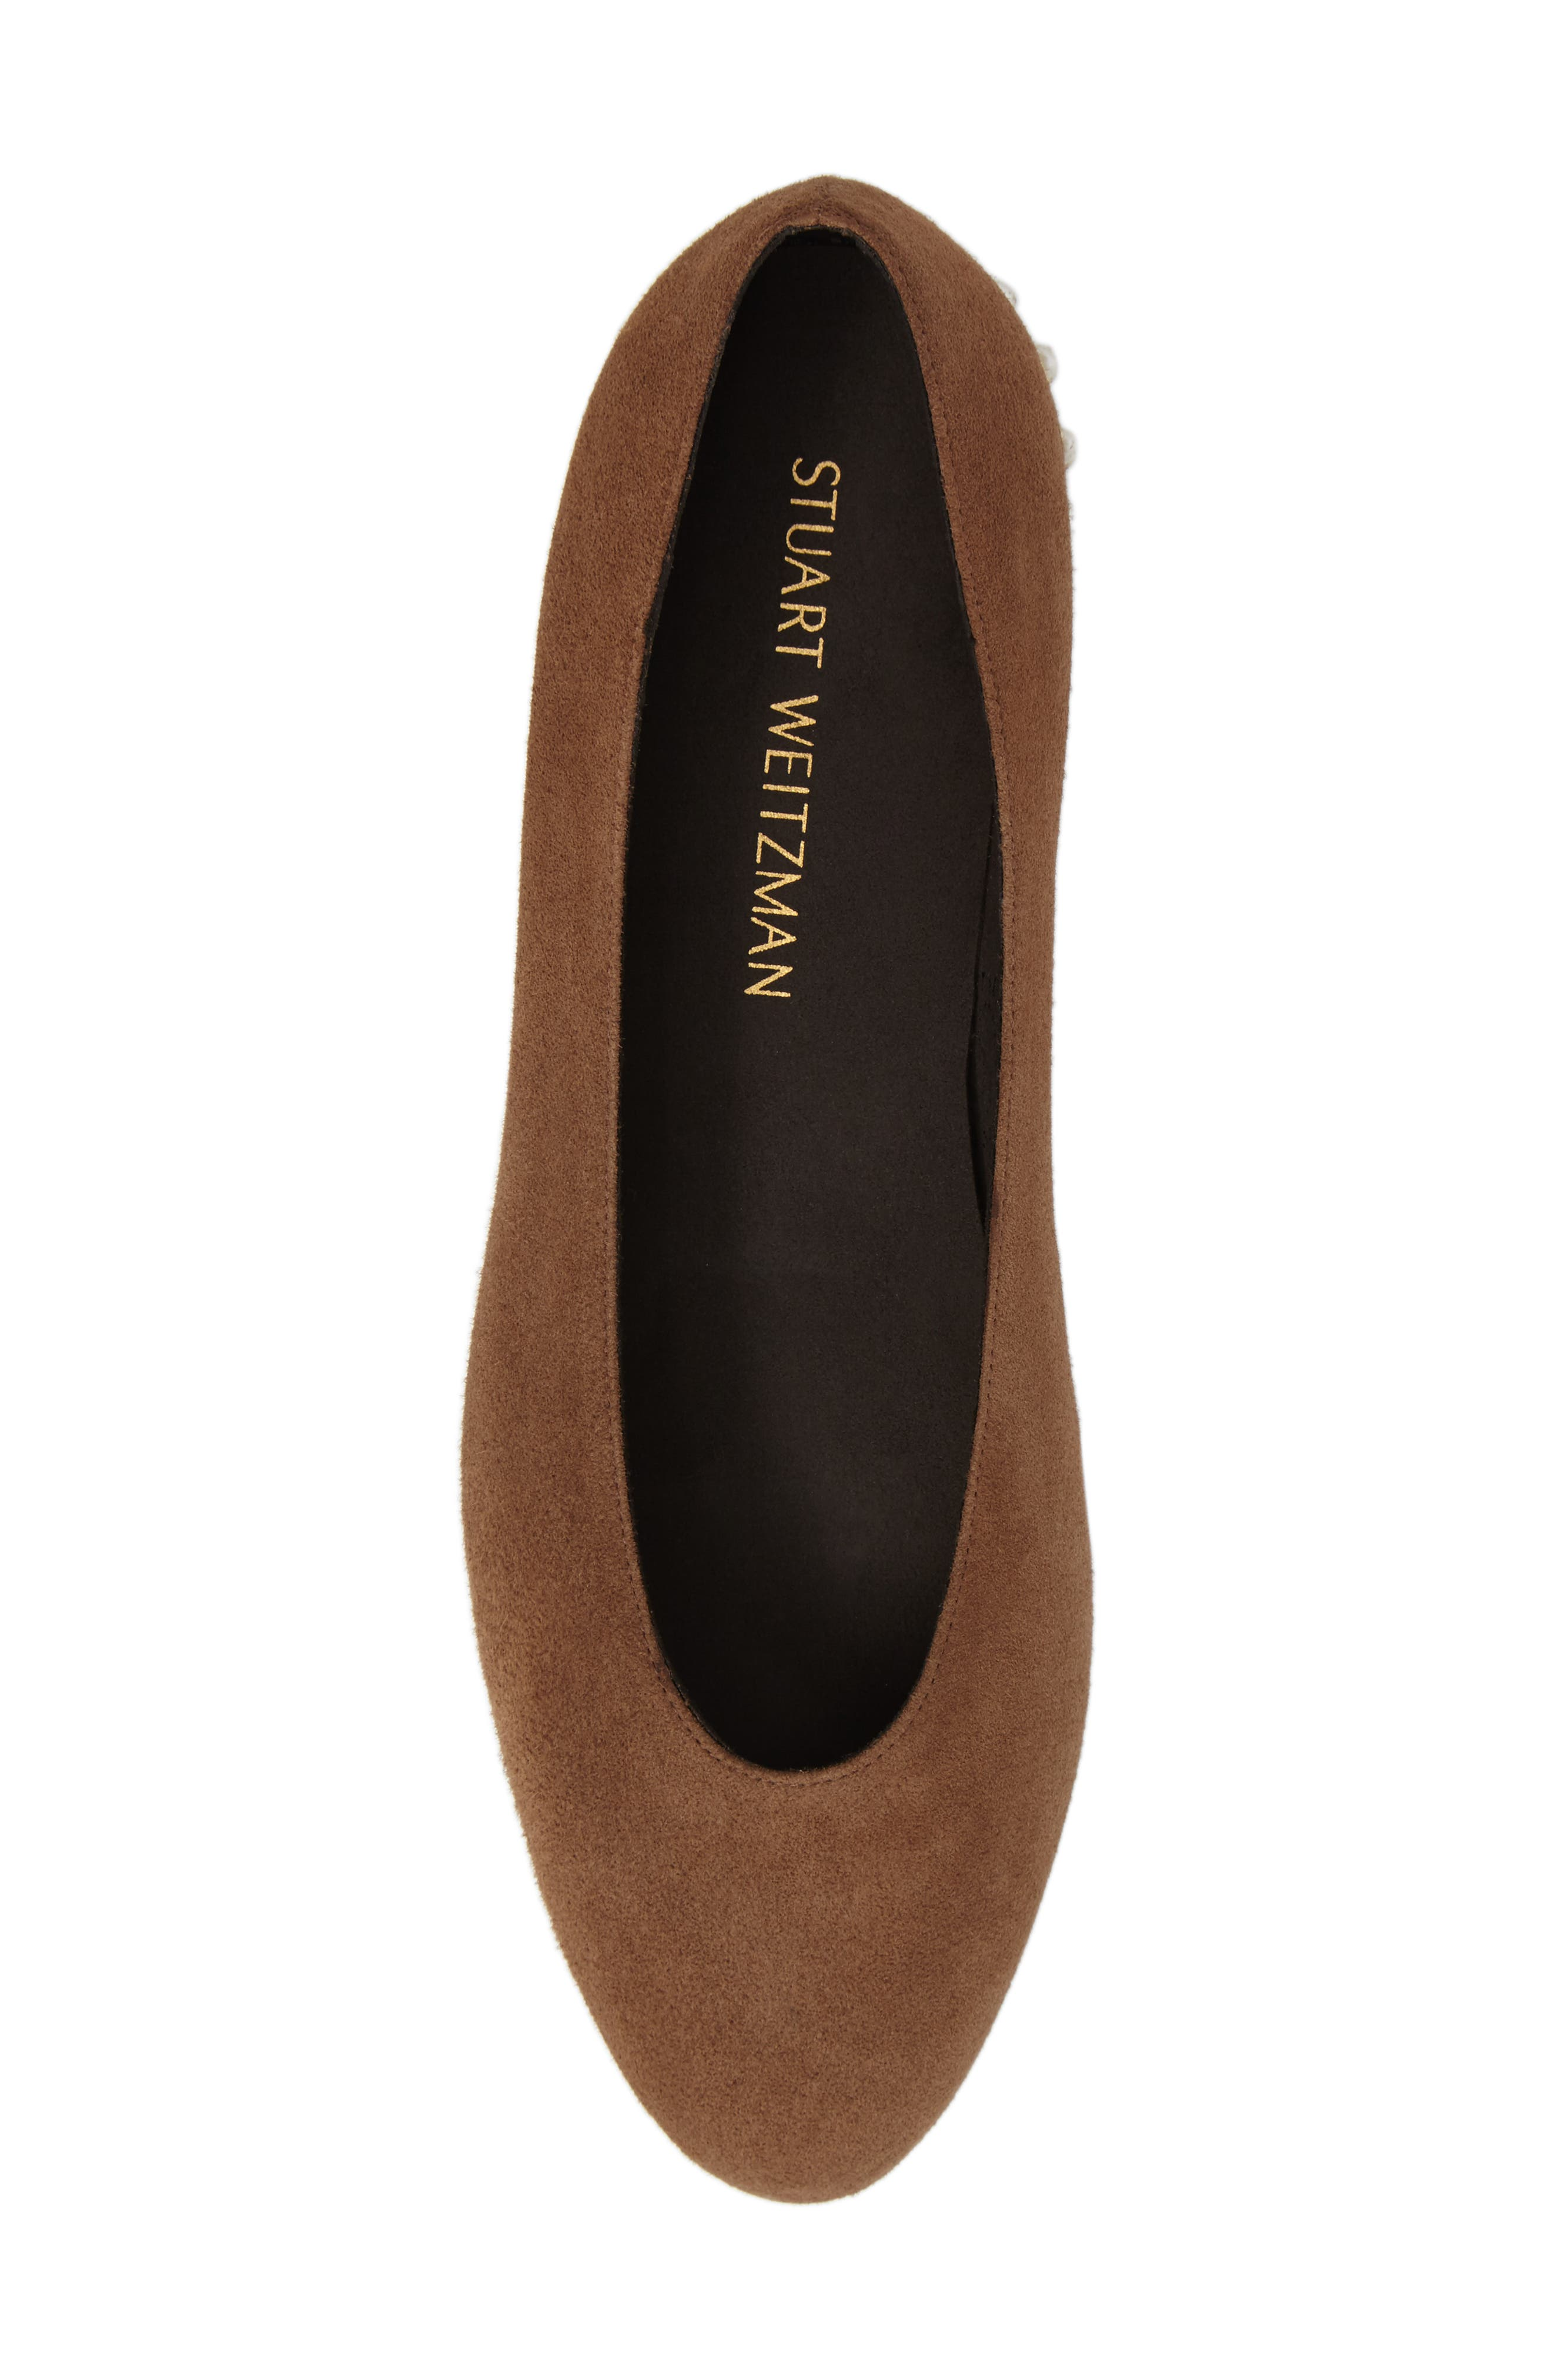 Chicpearl Ballet Flat,                             Alternate thumbnail 5, color,                             Nutmeg Suede